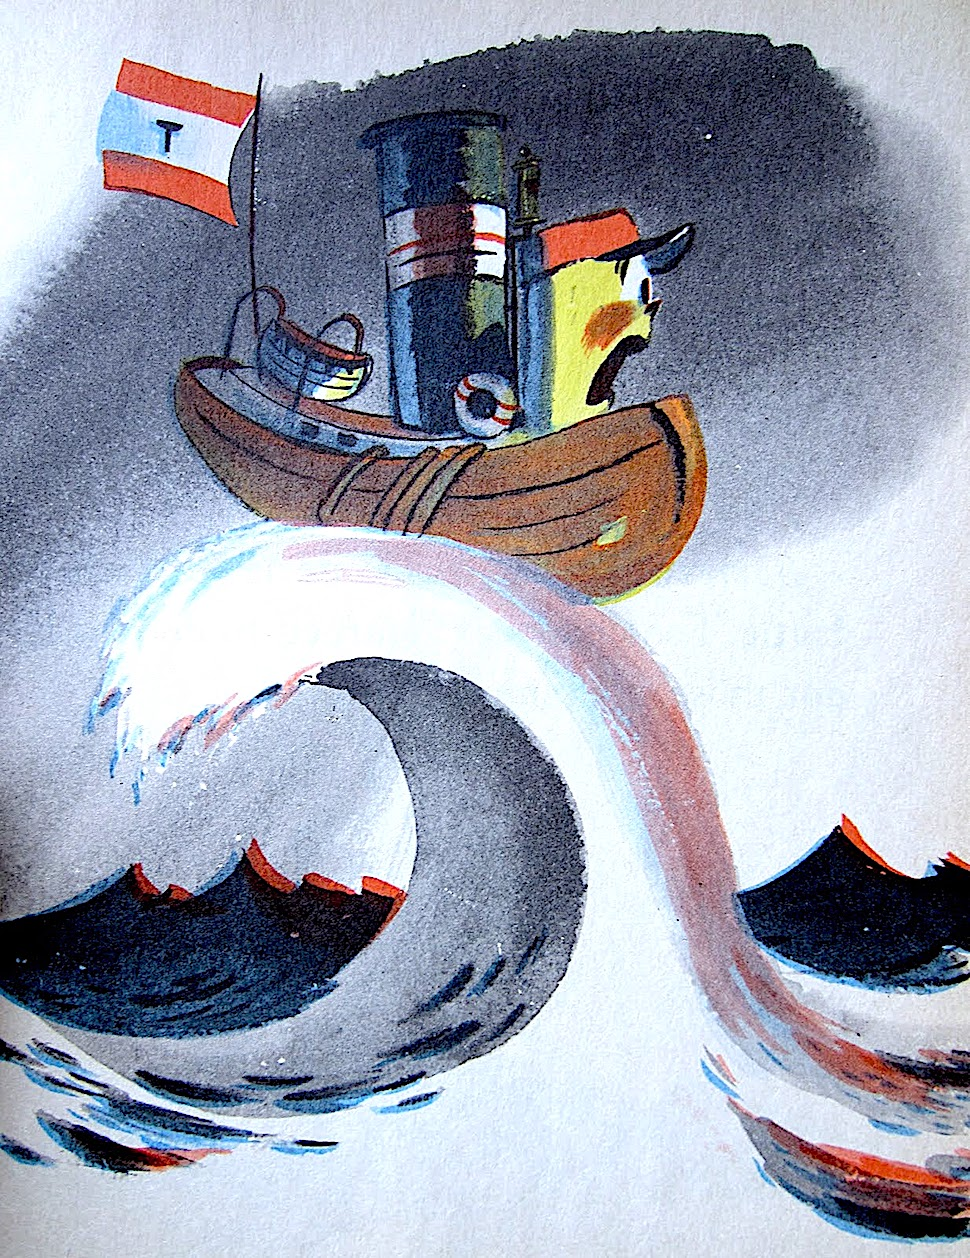 a 1940s children's book by Hardie Gramatky, tugboat